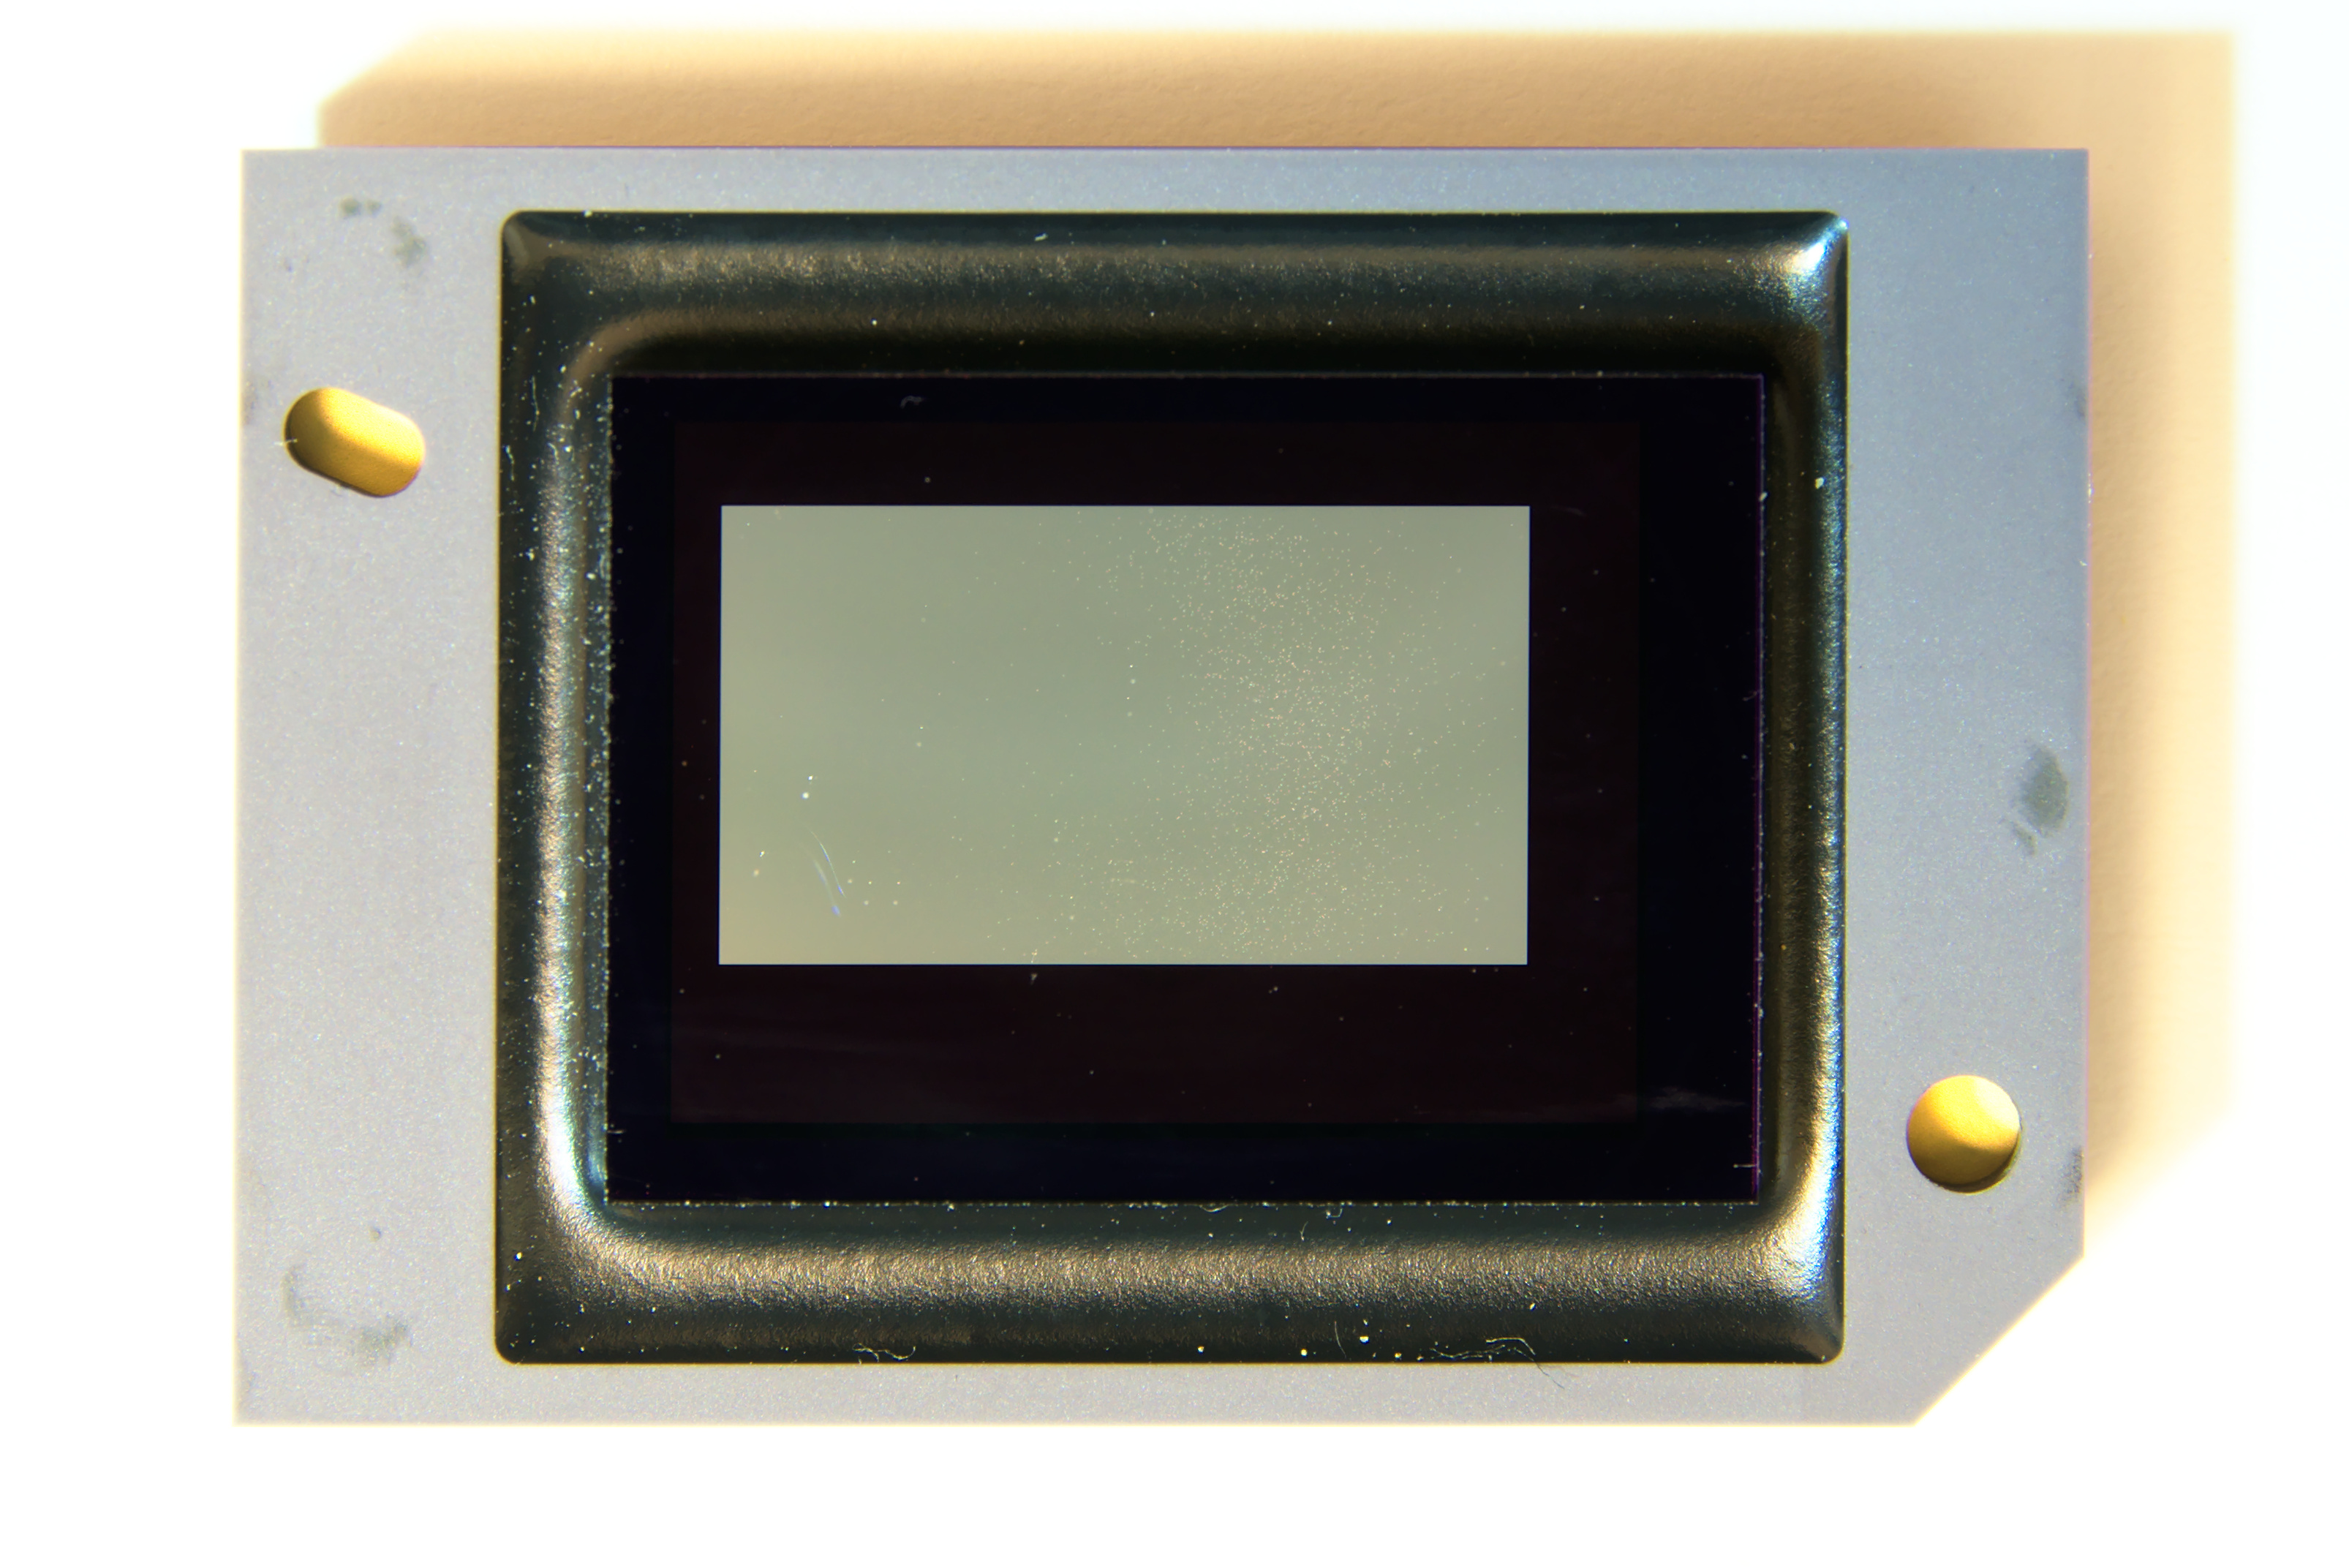 digital micromirror A digital micromirror device (dmd) is an array of individually switchable mirrors that can be used in many advanced optical systems as a rapid spatial light modulator.